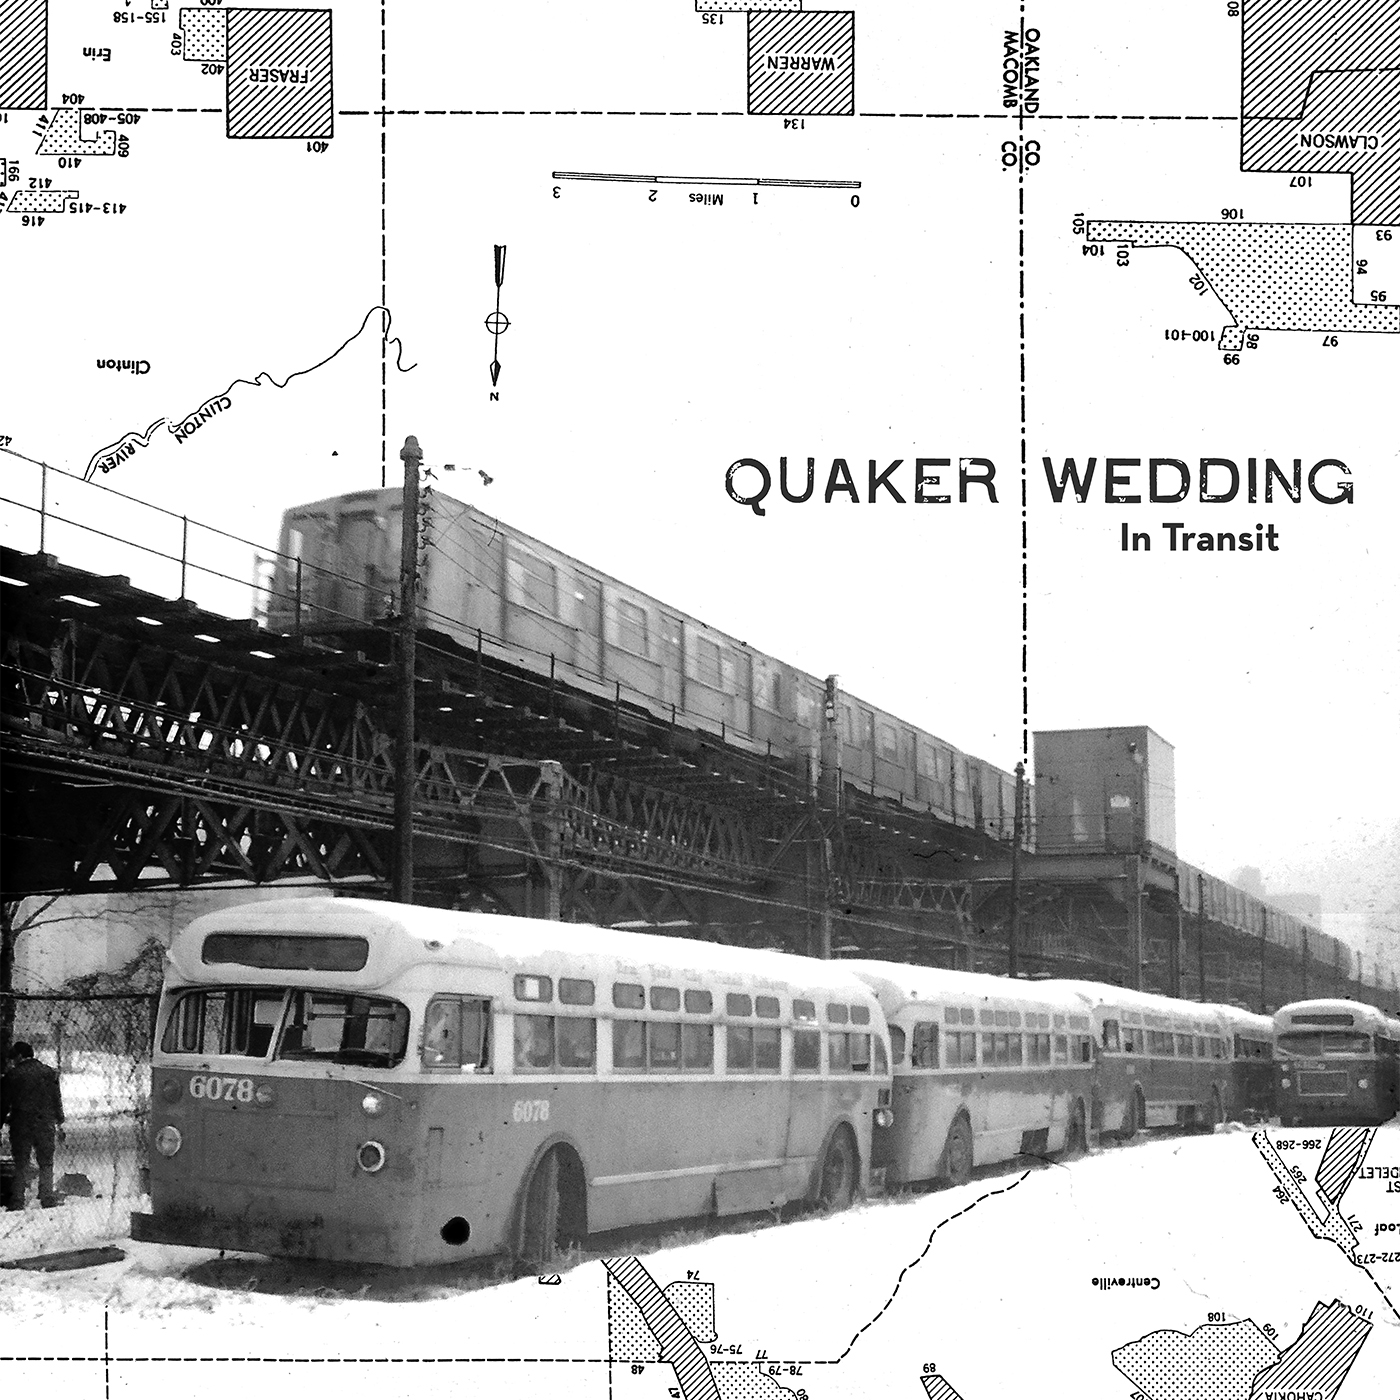 Quaker Wedding